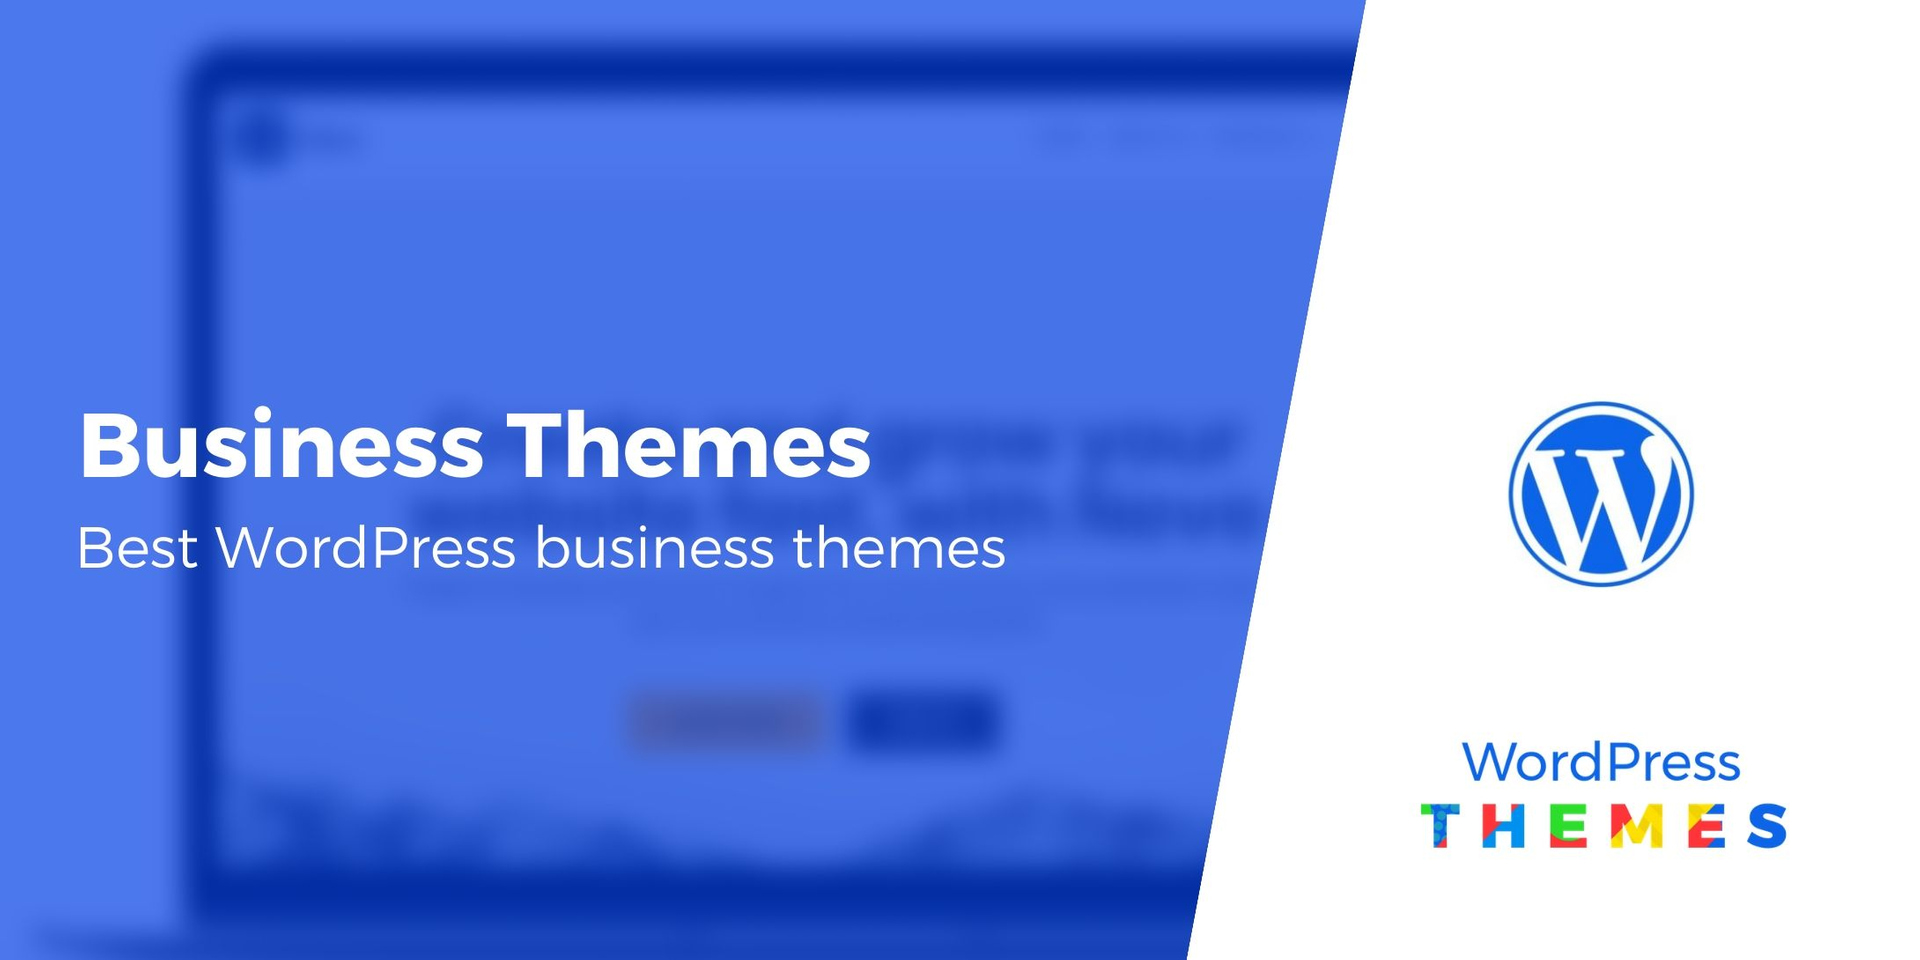 Choosing the Best WordPress Theme for Your Business